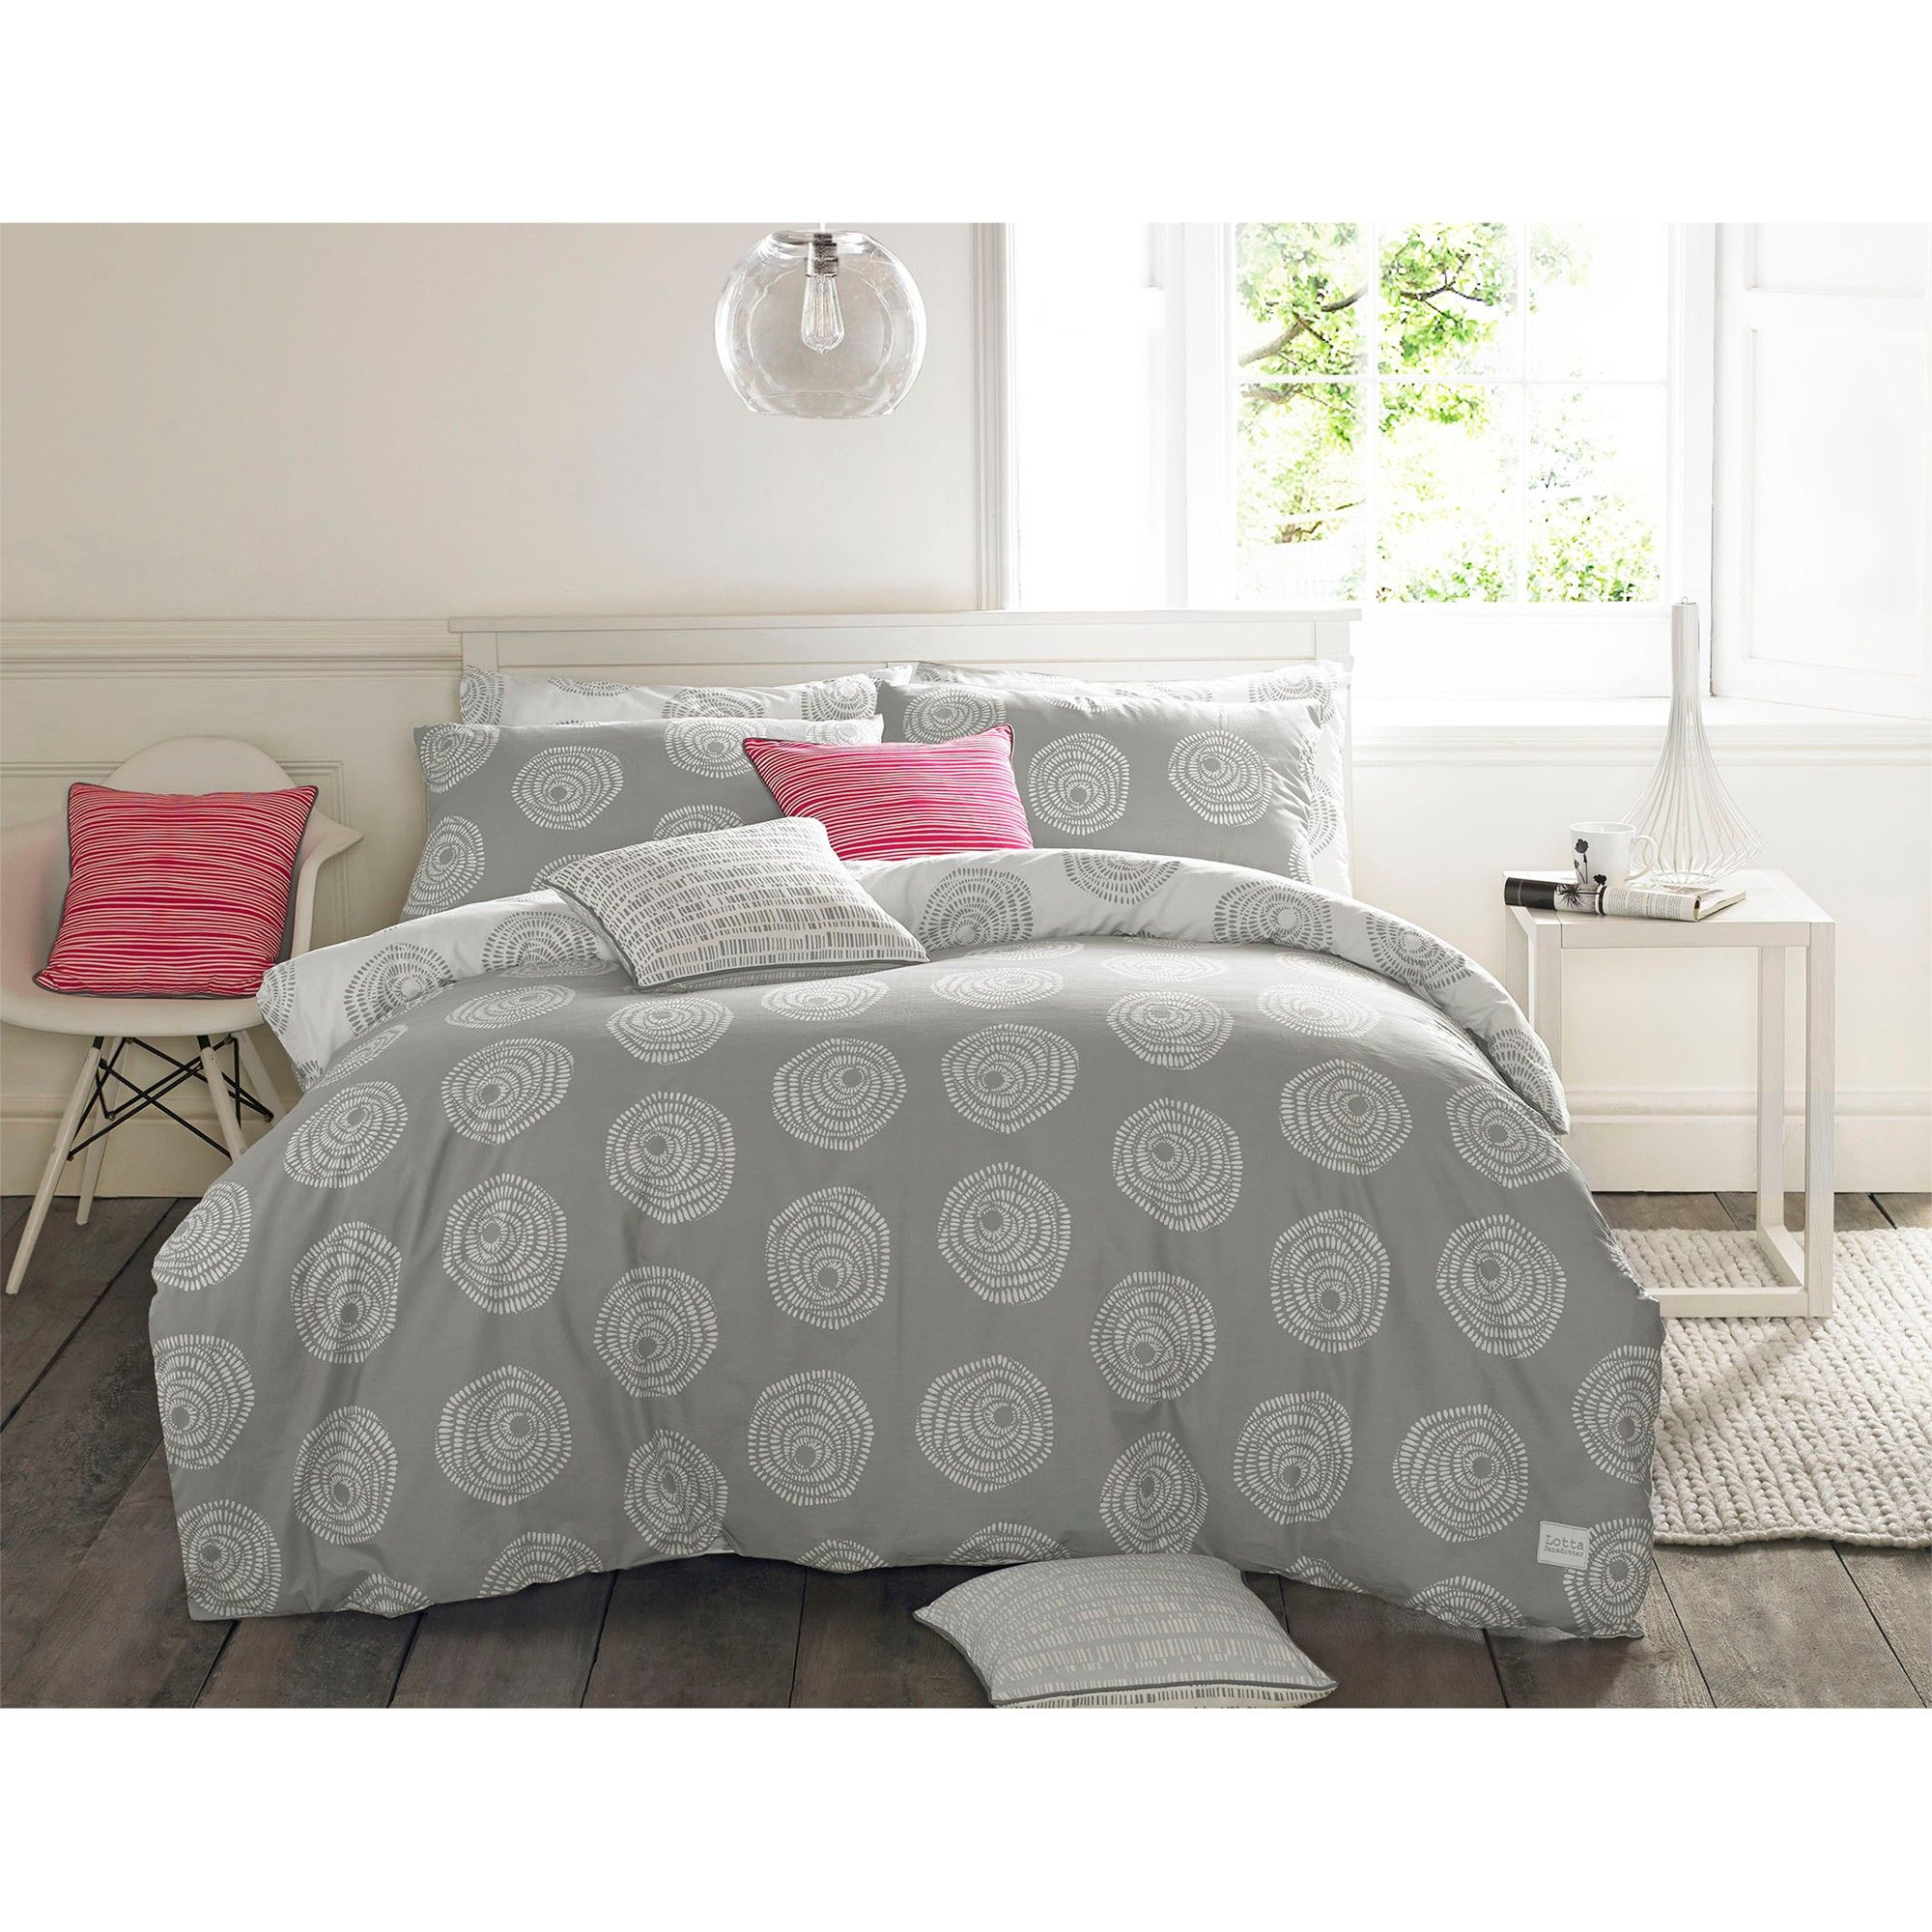 duvet overstock taped ivy ink free bath mini percale metallic reese today set cotton shipping product cover grey twill ruched bedding